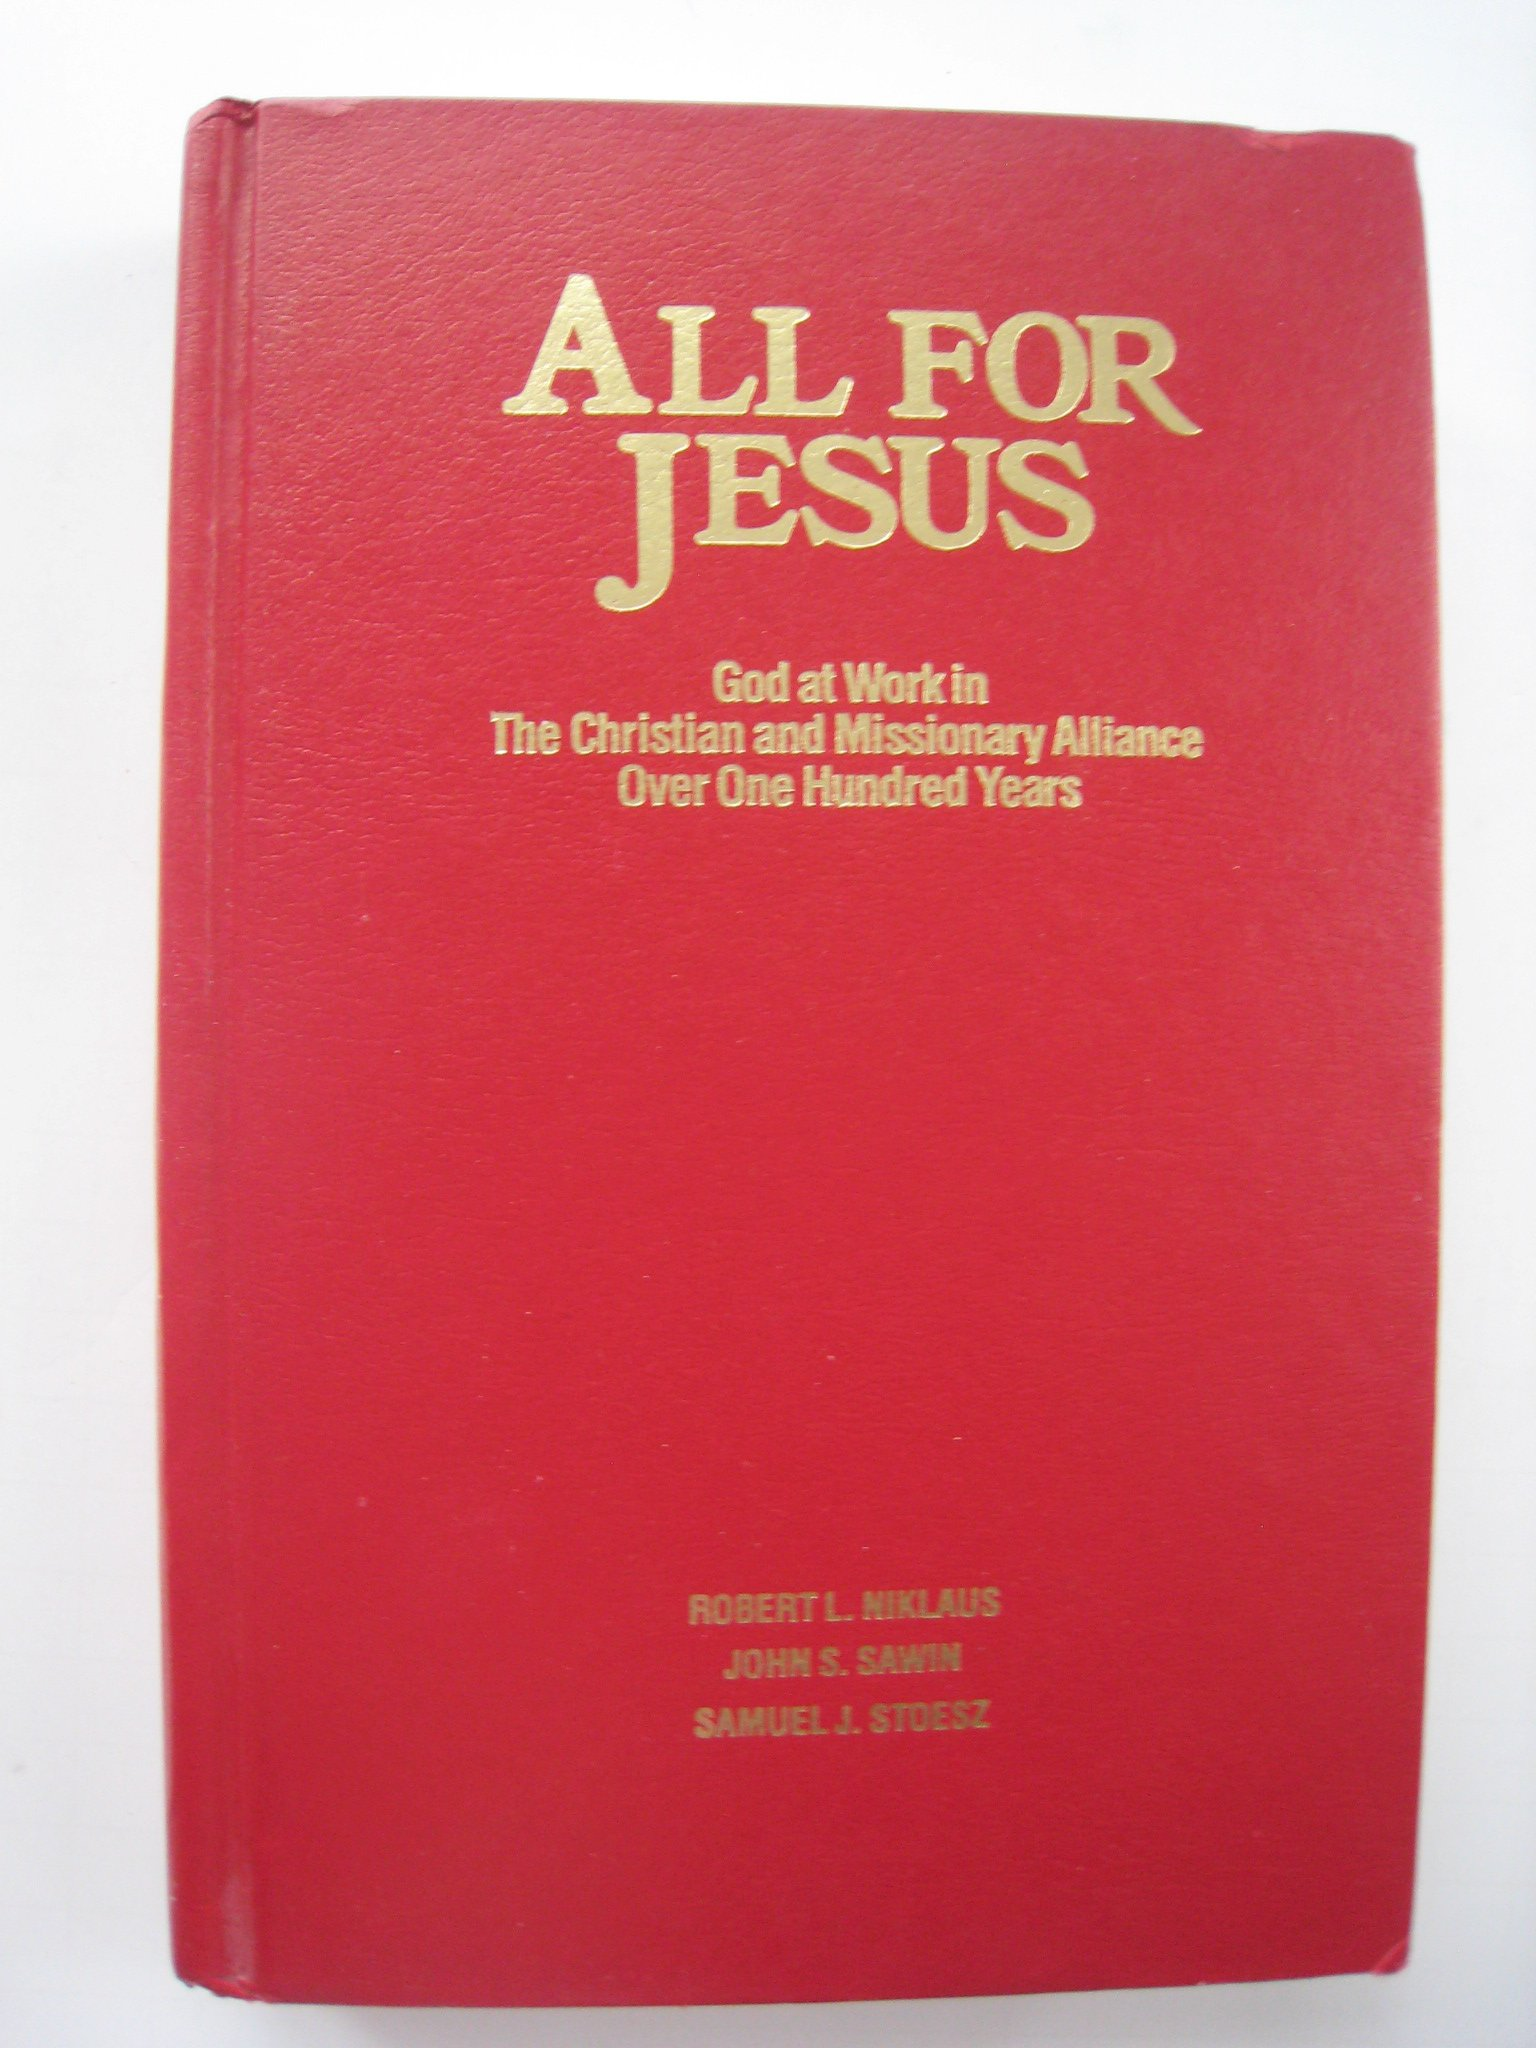 All For Jesus: God at Work in the Christian and Missionary Alliance Over One Hundred Years